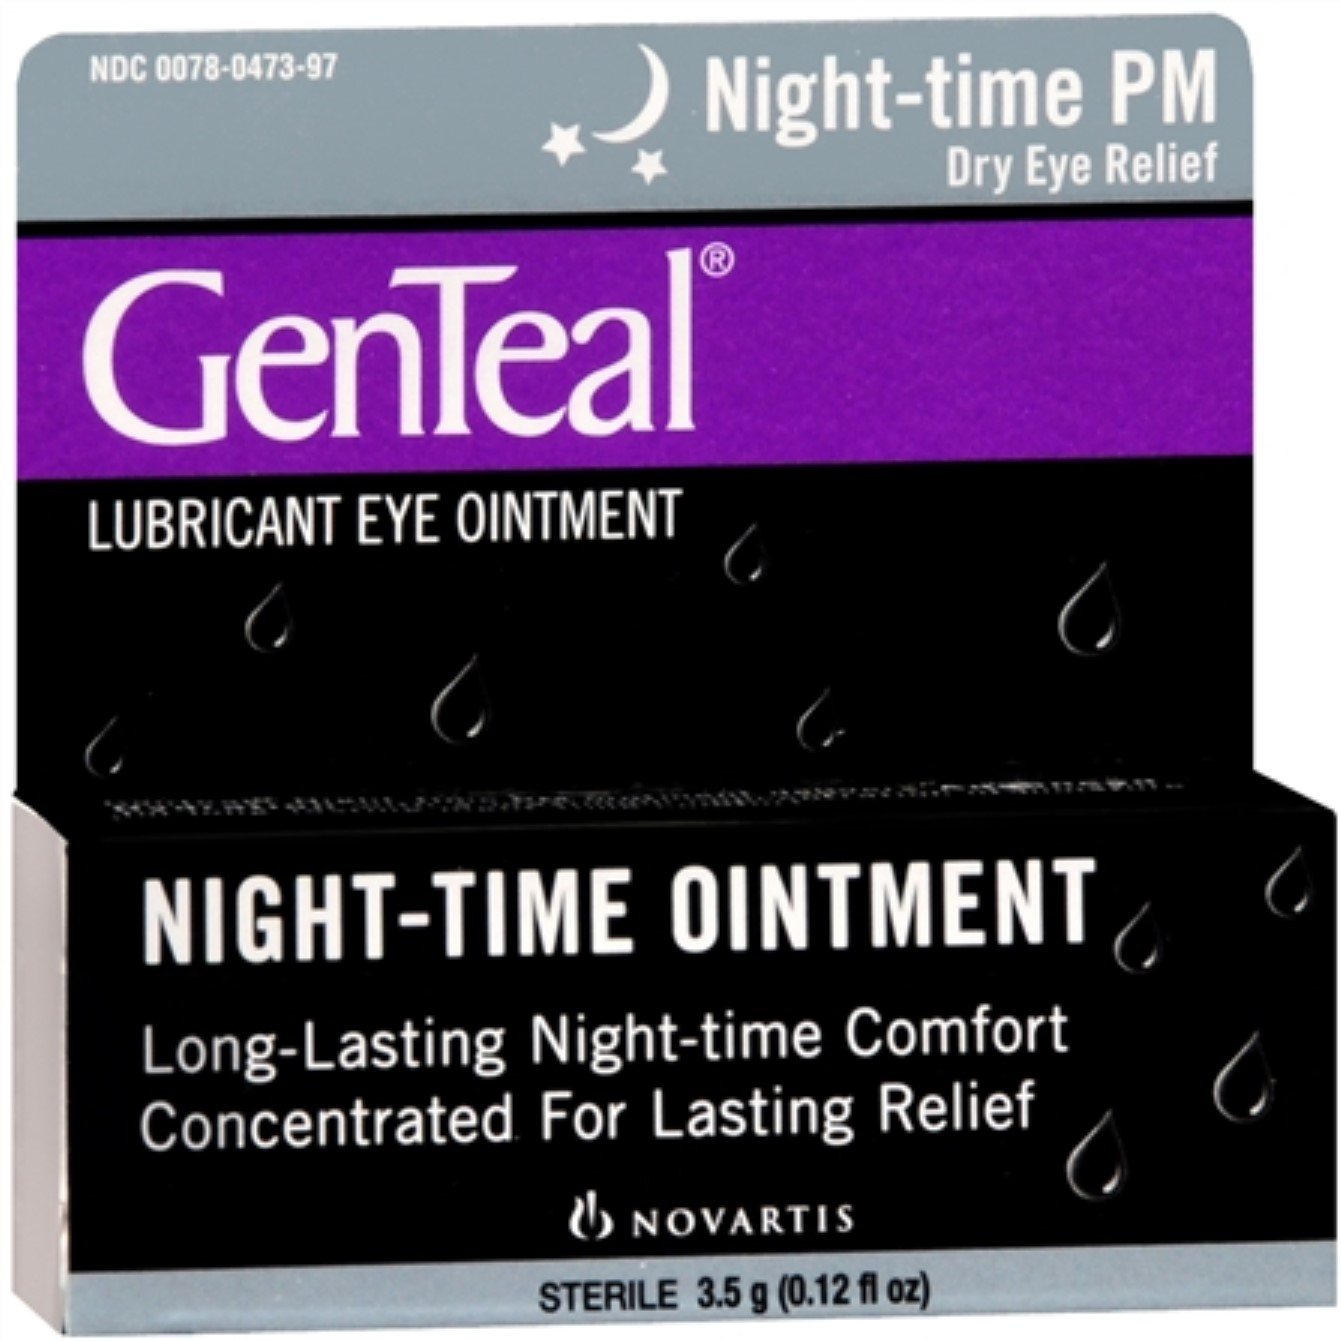 GenTeal PM Lubricant Eye Ointment 3.50 g (Pack of 3)